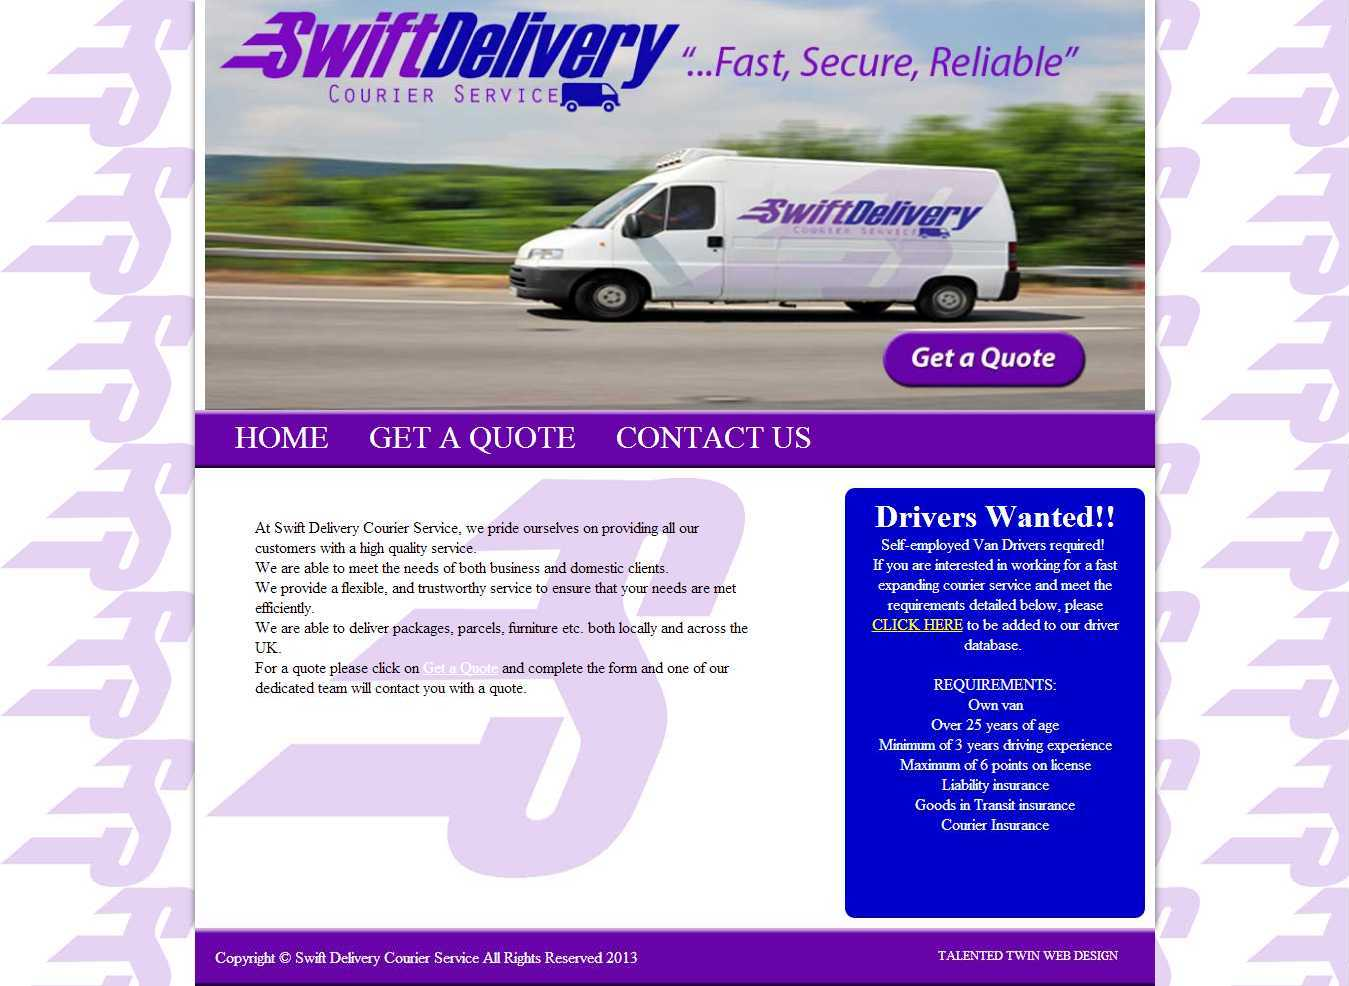 Swift Delivery Courier Service Homepage